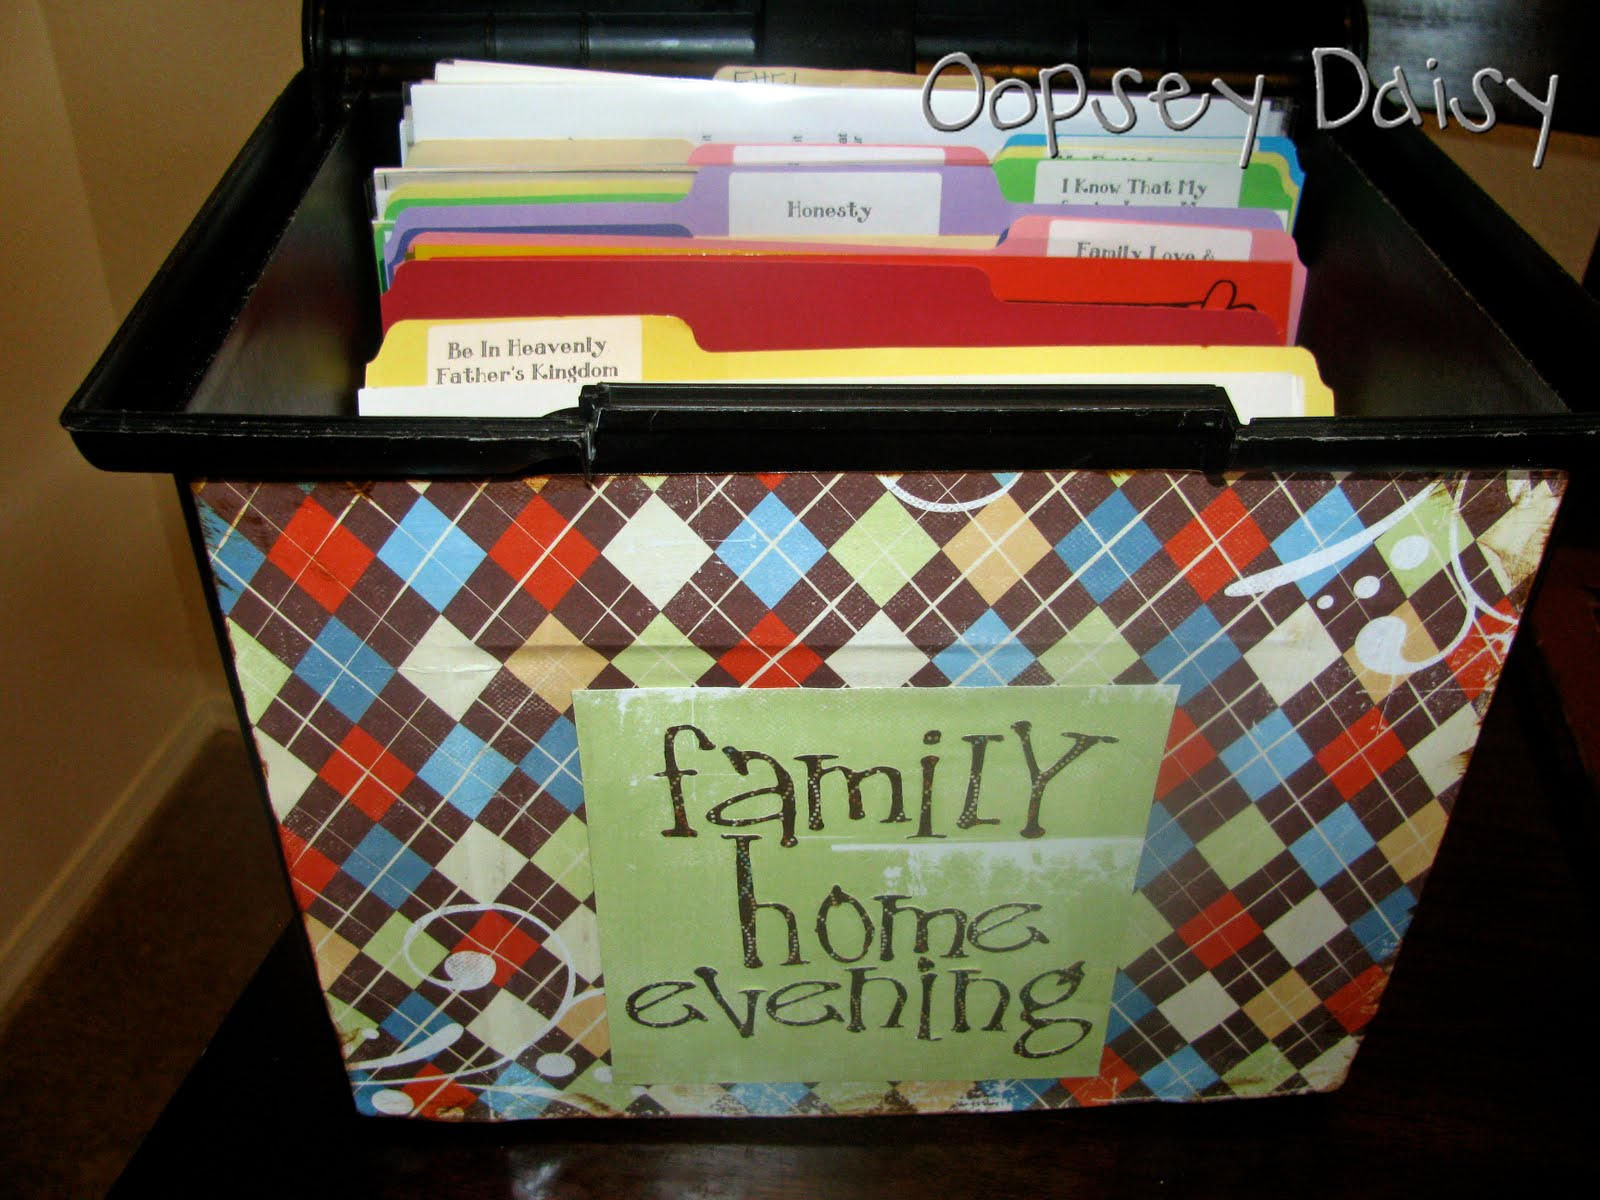 family home evening file organization oopsey daisy